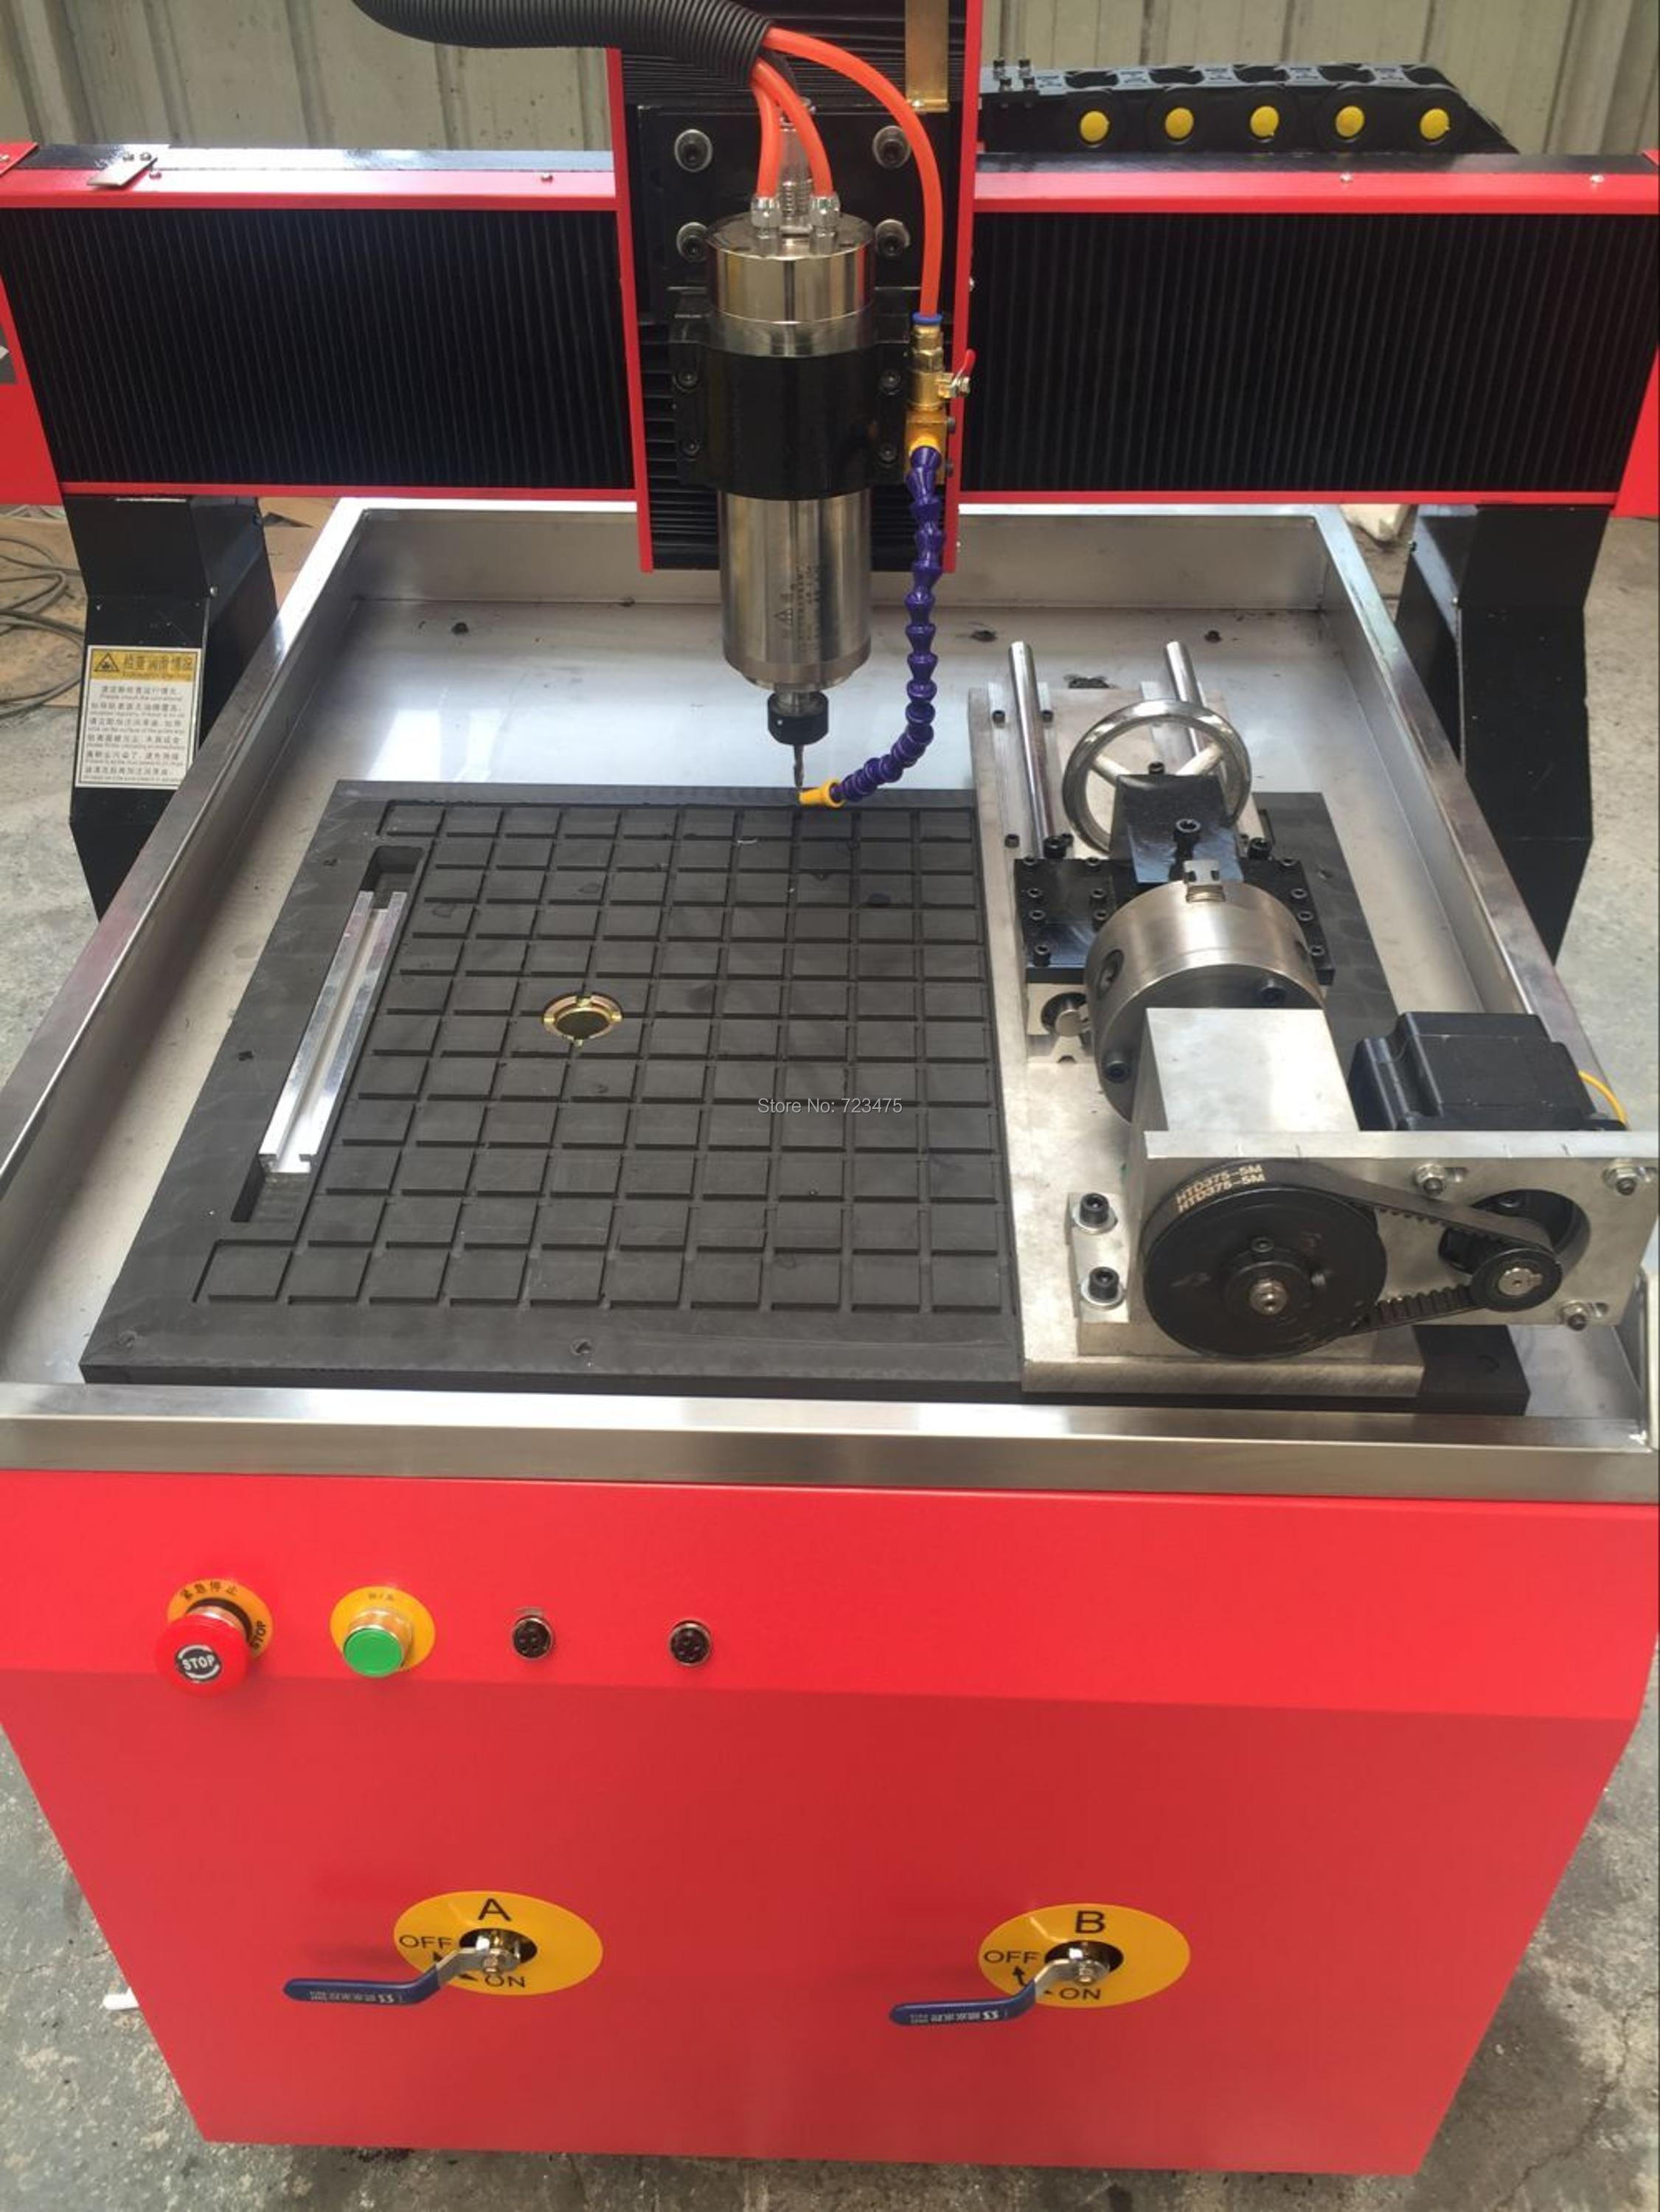 China Workshop supply T-slot table 4 axis rotary cnc router 6090 mini cnc router rtm 6090 with t slot vacuum table